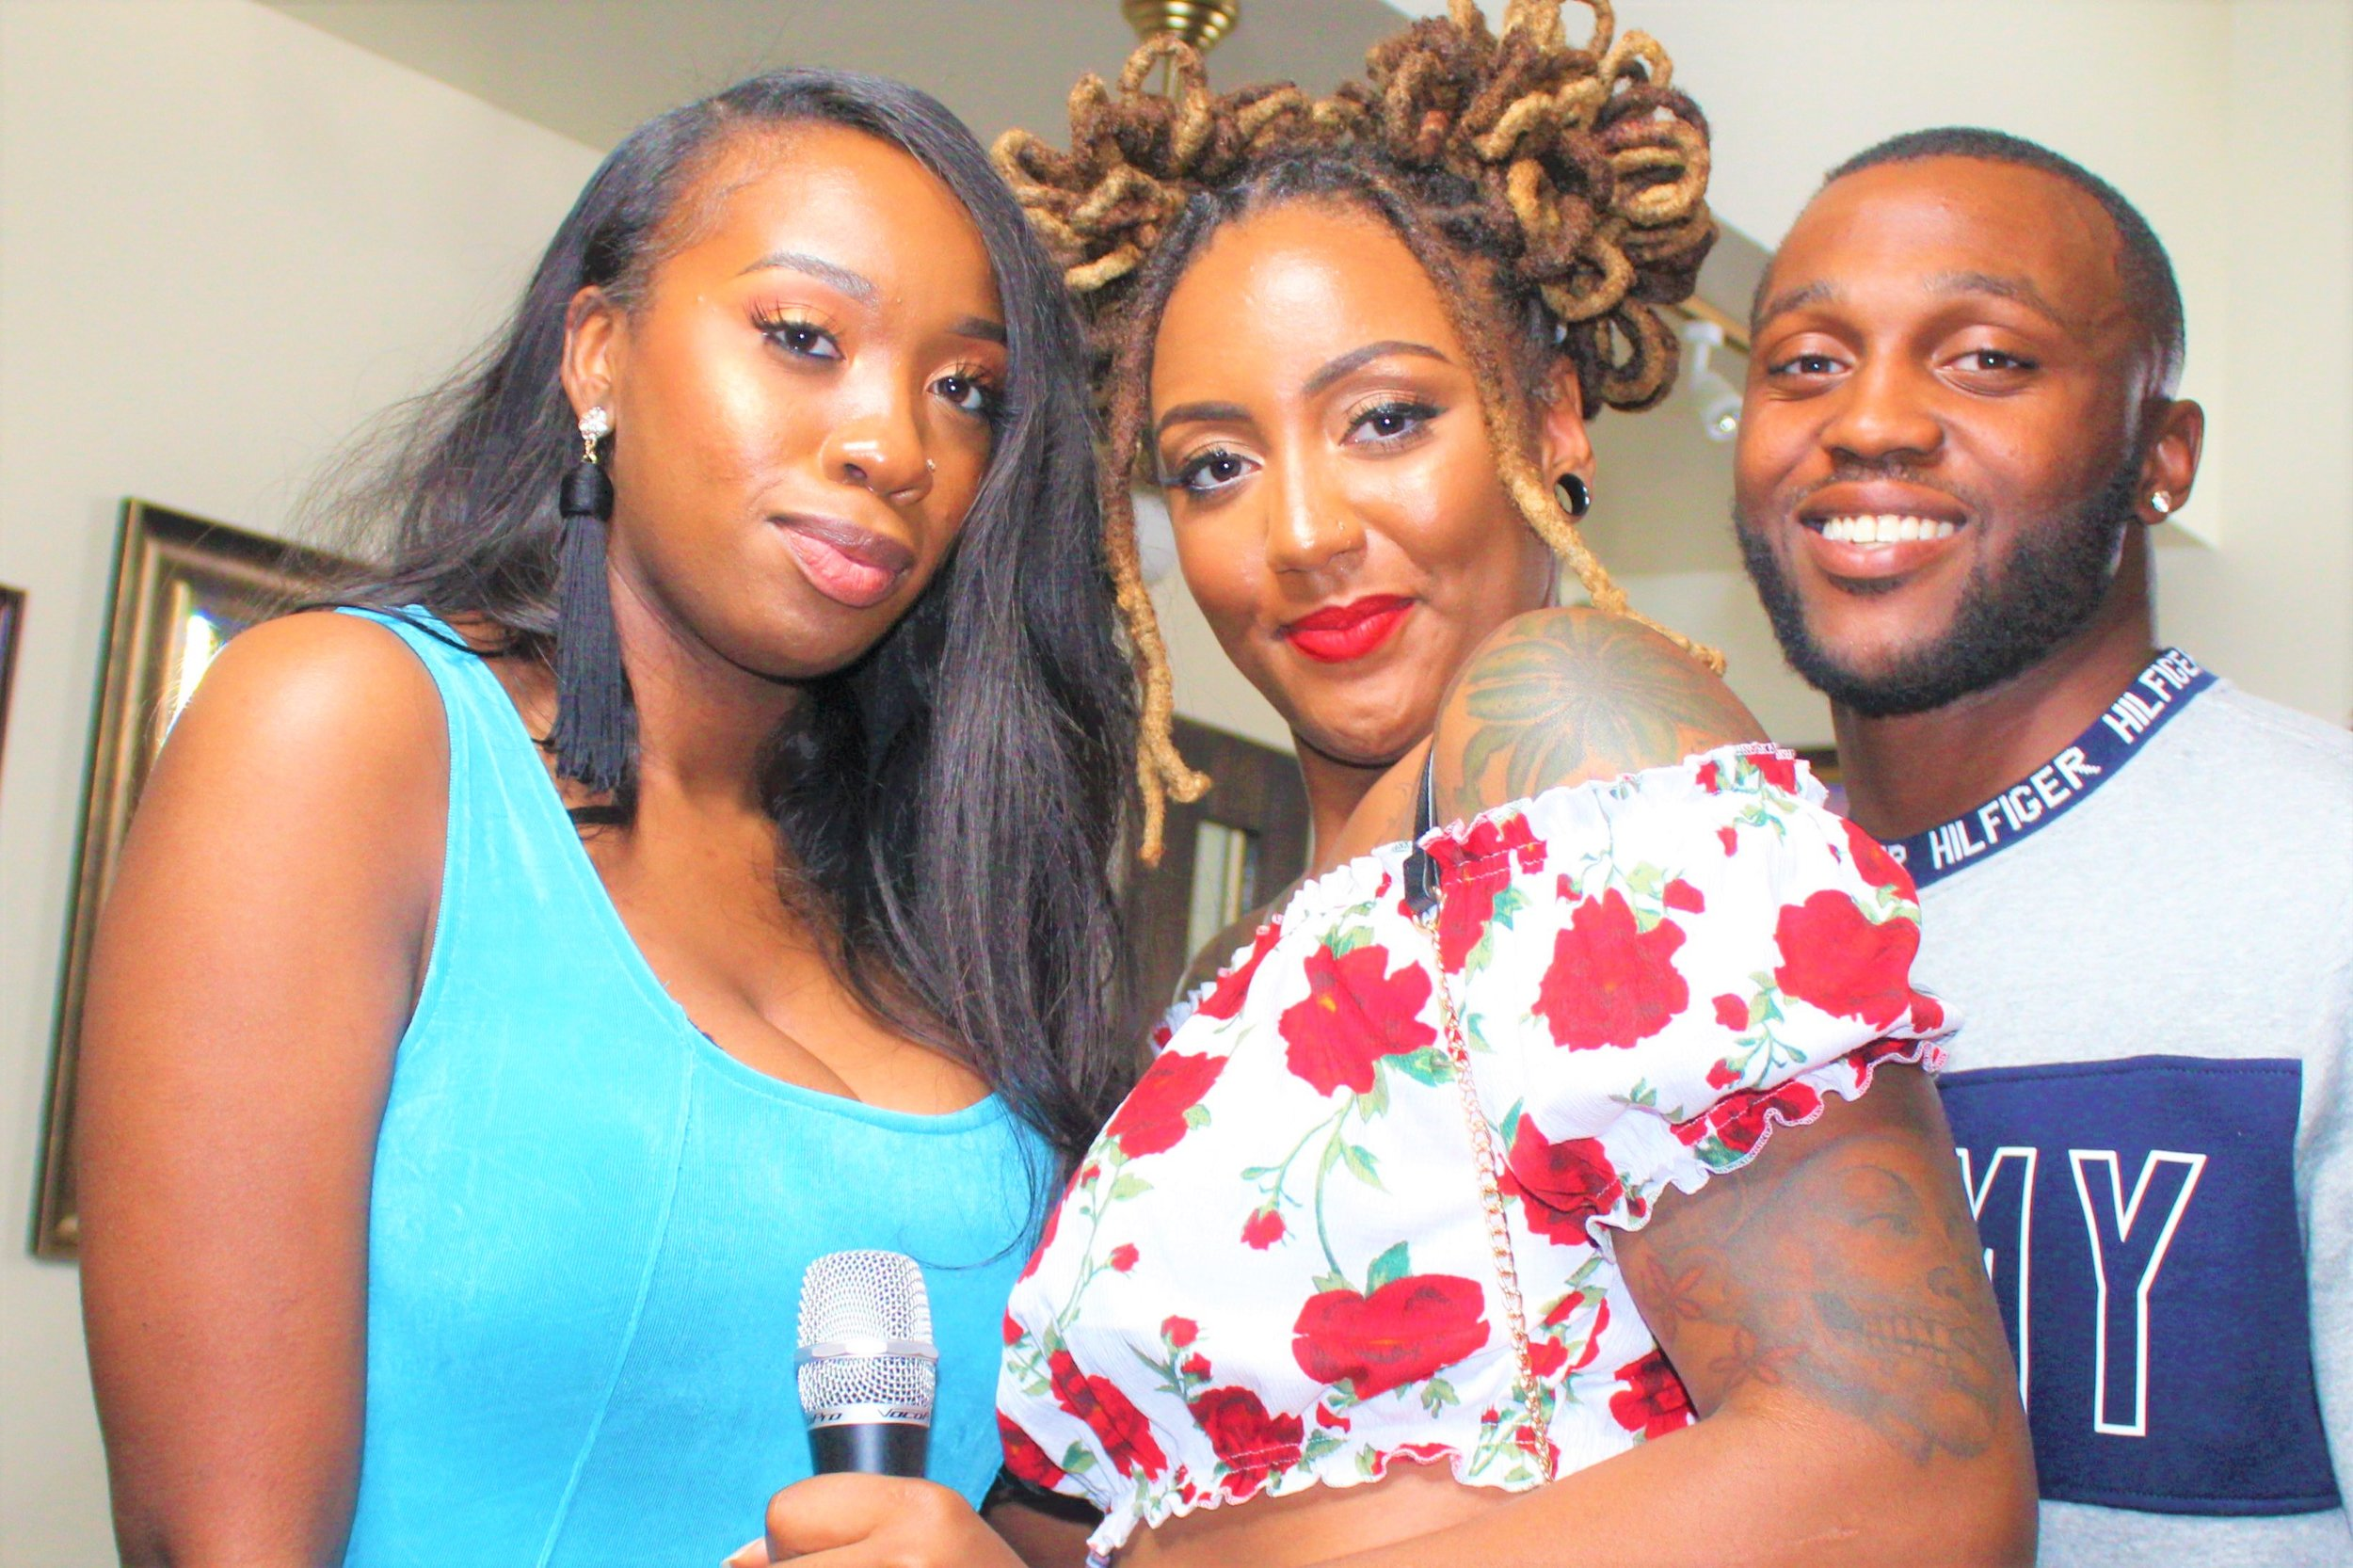 Founder and Creator of Authenticity, Lonette striked a pose with fellow co-hosts Key and Storey during their live event over the past weekend.  Photo Credit:  Danielle Brown